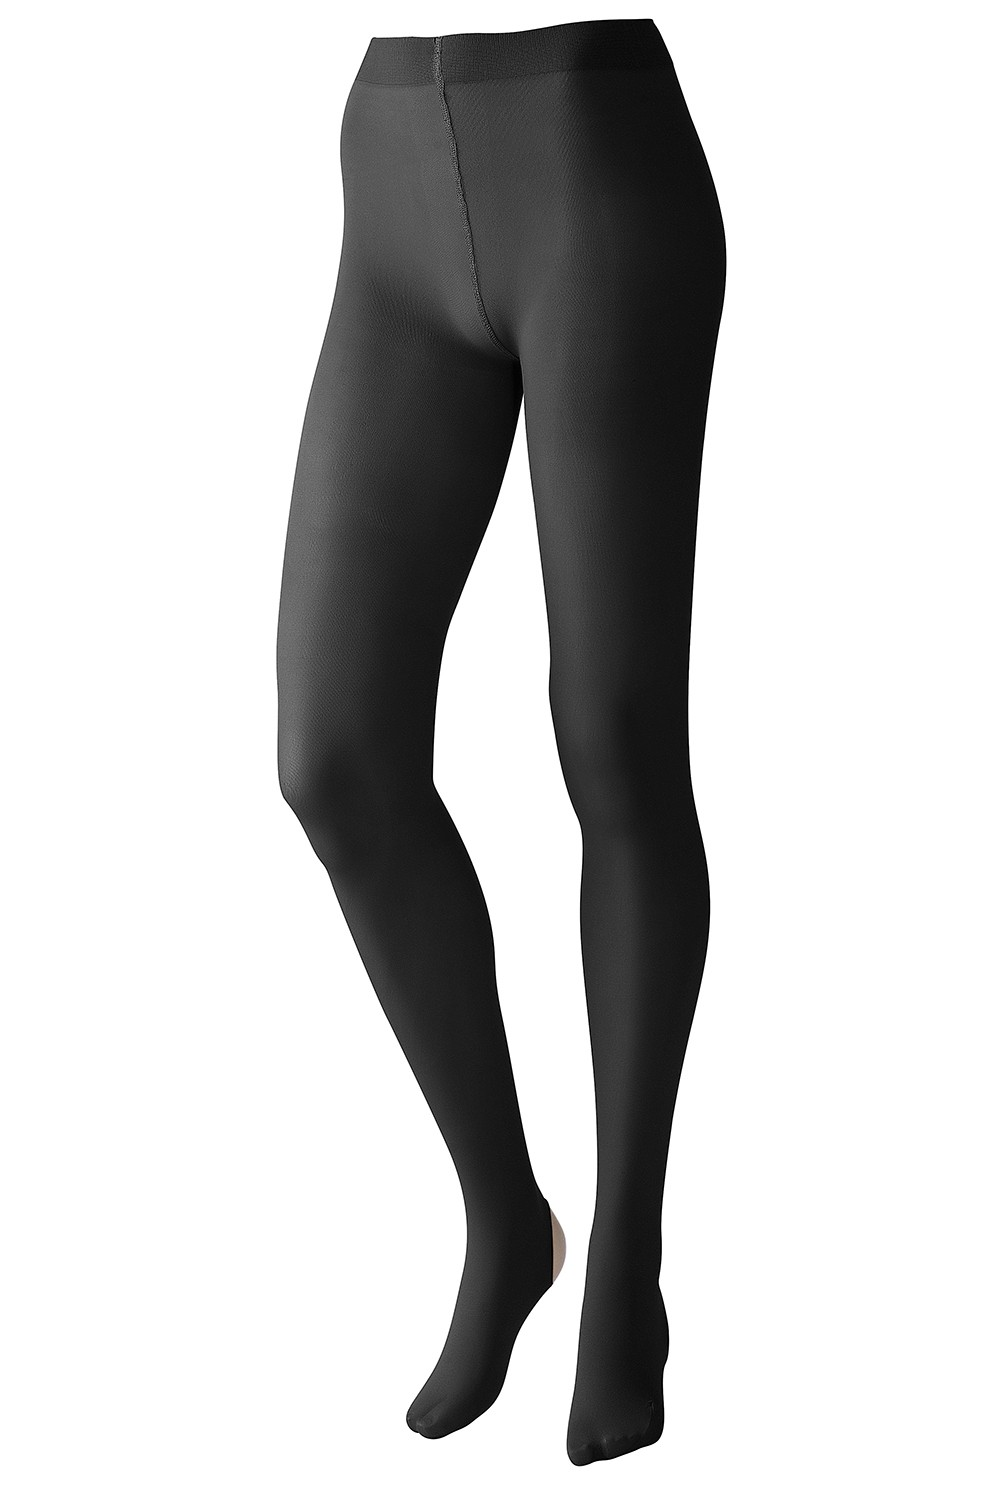 Women's Dance Tights